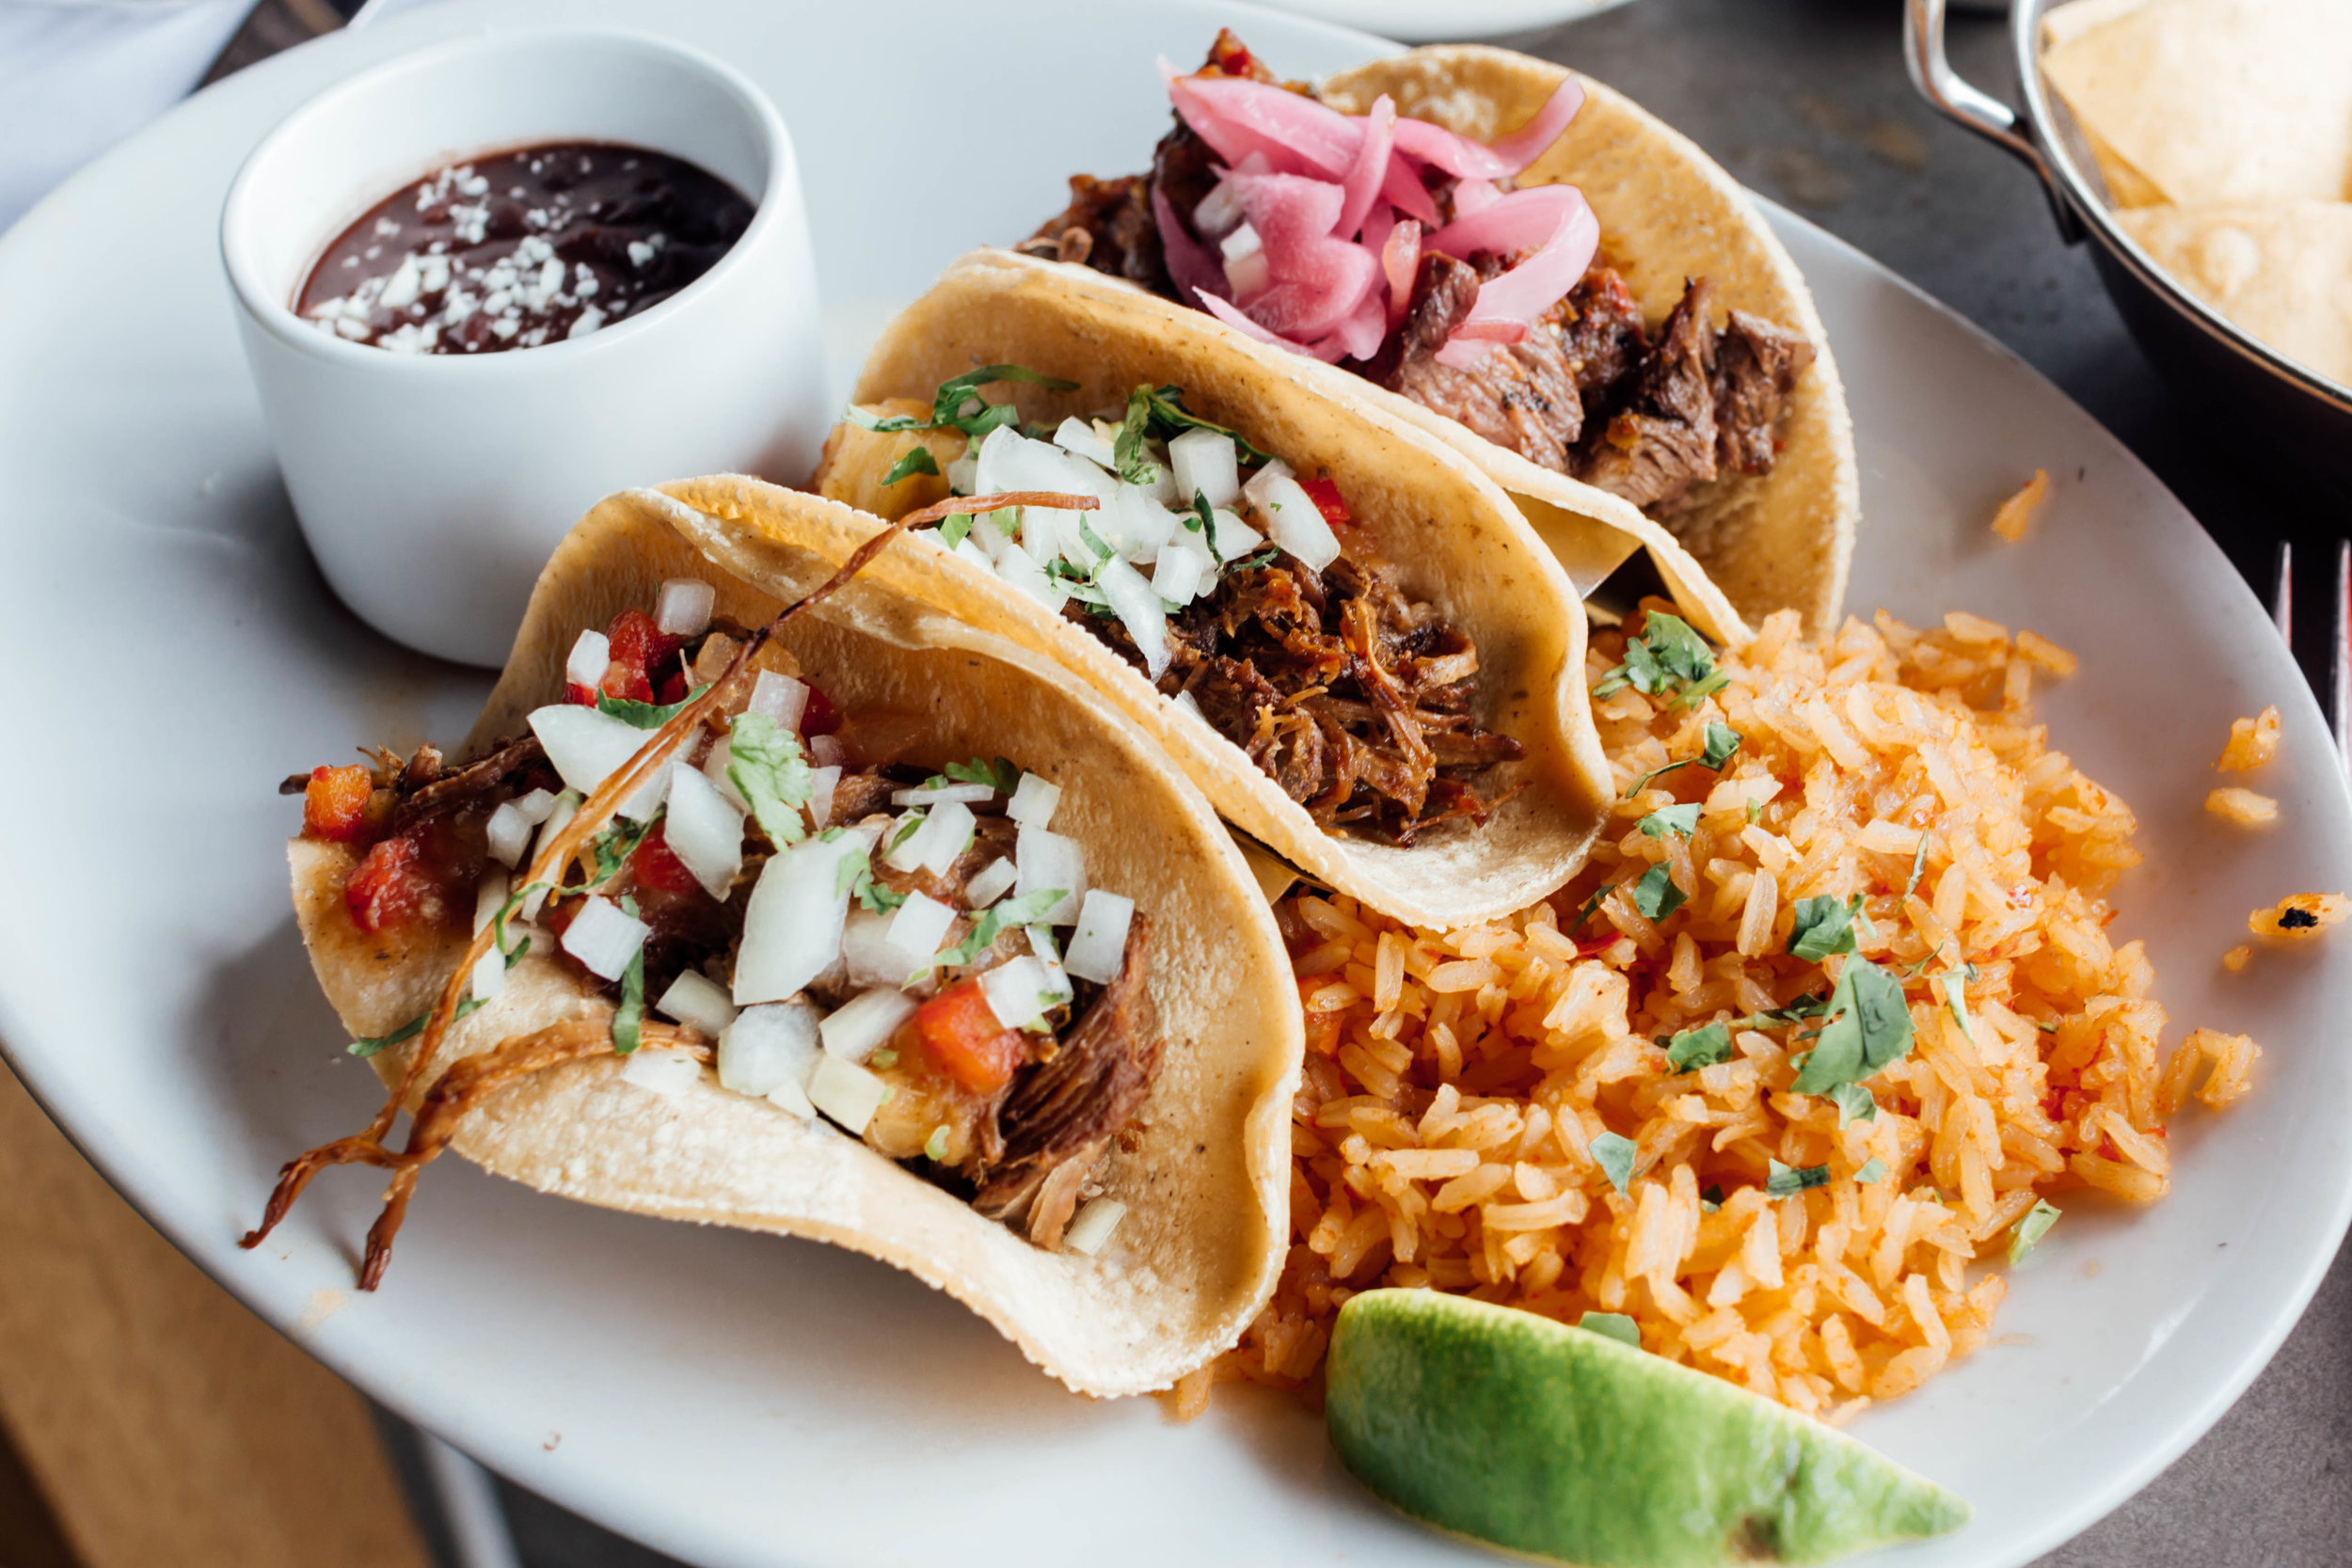 CARNITAS AND STEAK TACOS